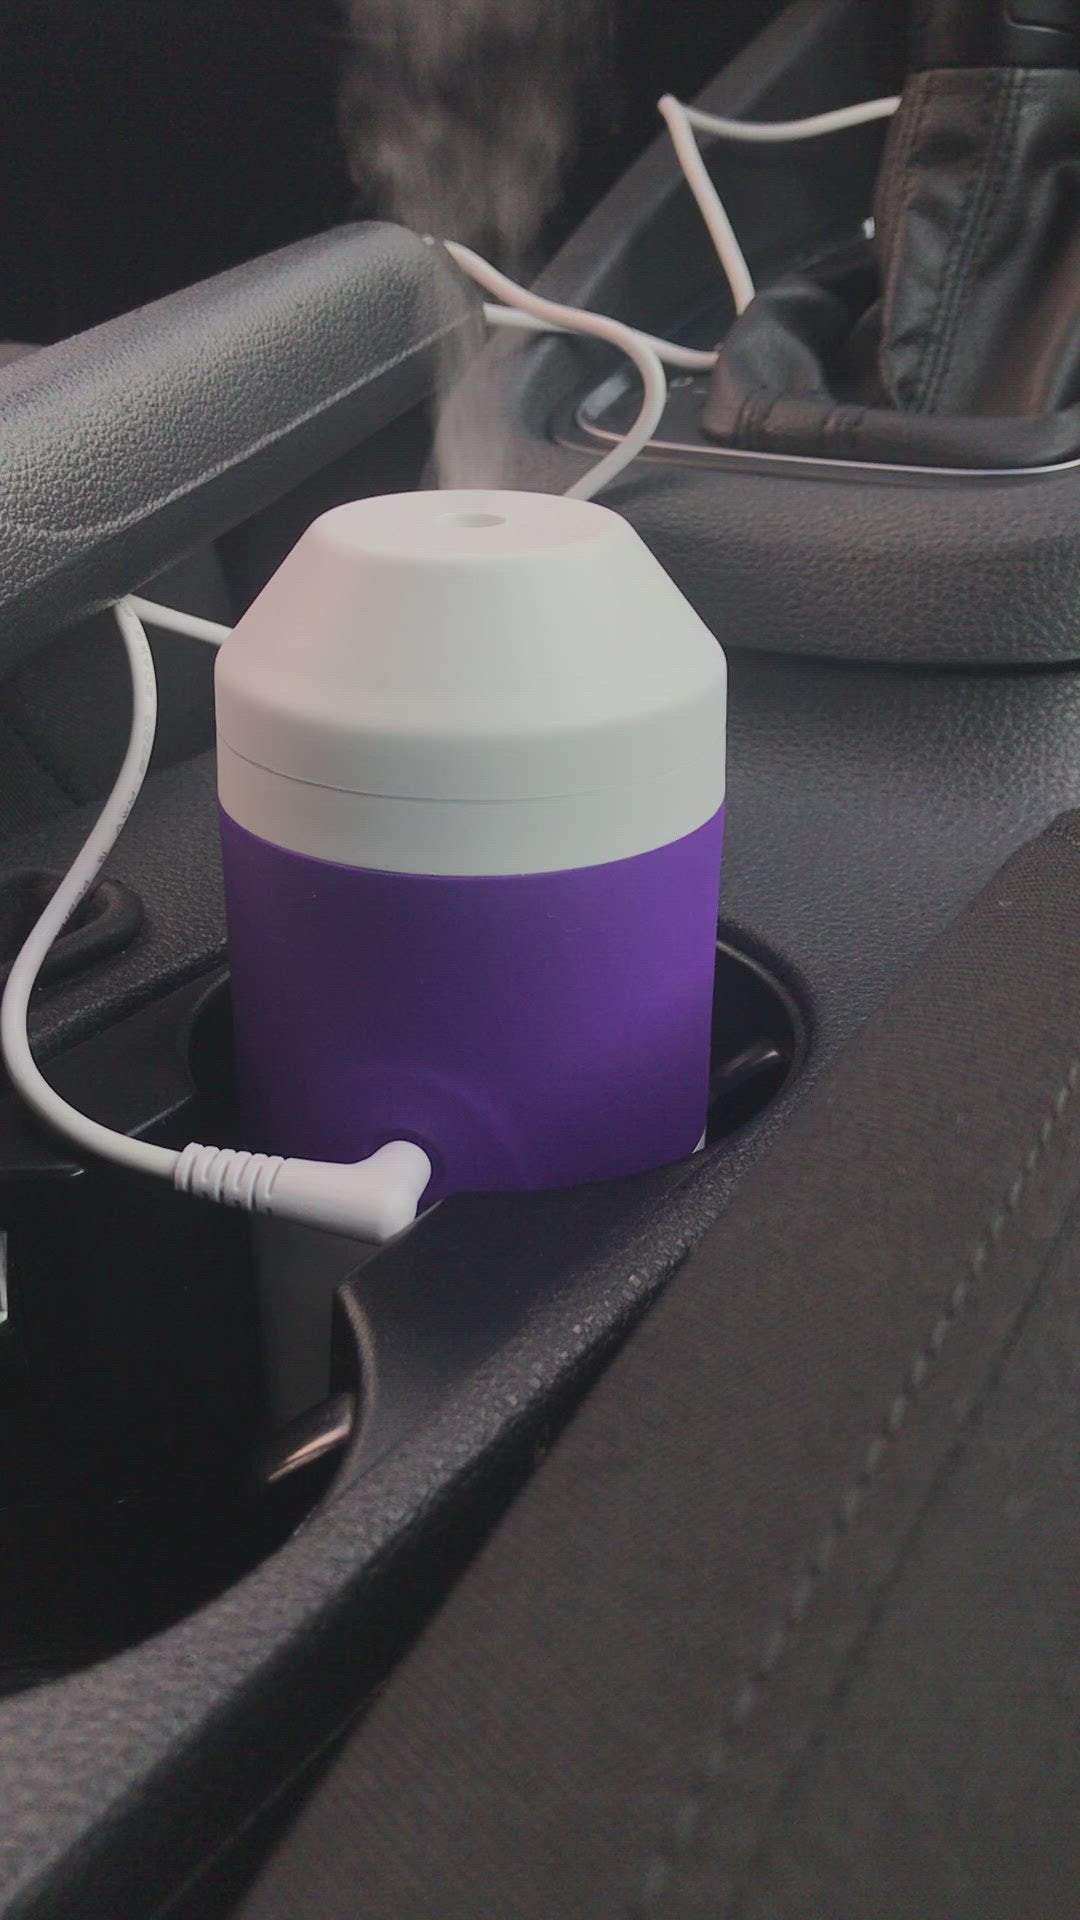 Bioesque Disinfectant + ZAQ Essential Oil Car Diffuser